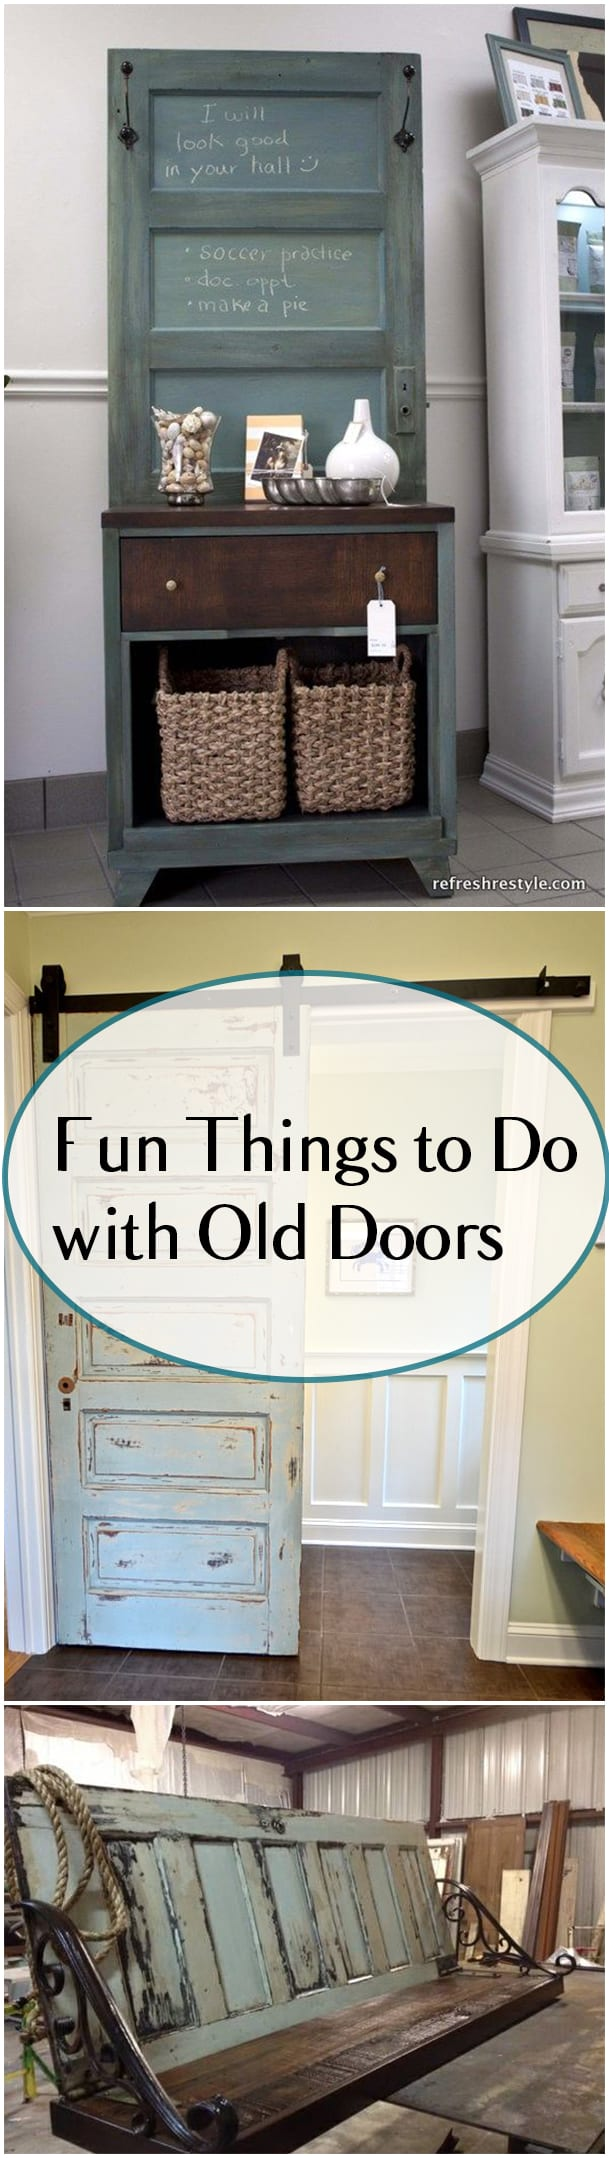 Things to do with old doors, DIY door projects, repurpose projects, popular pin, DIY home decor projects, DIY projects, DIY tutorials, home decor, interior design ideas